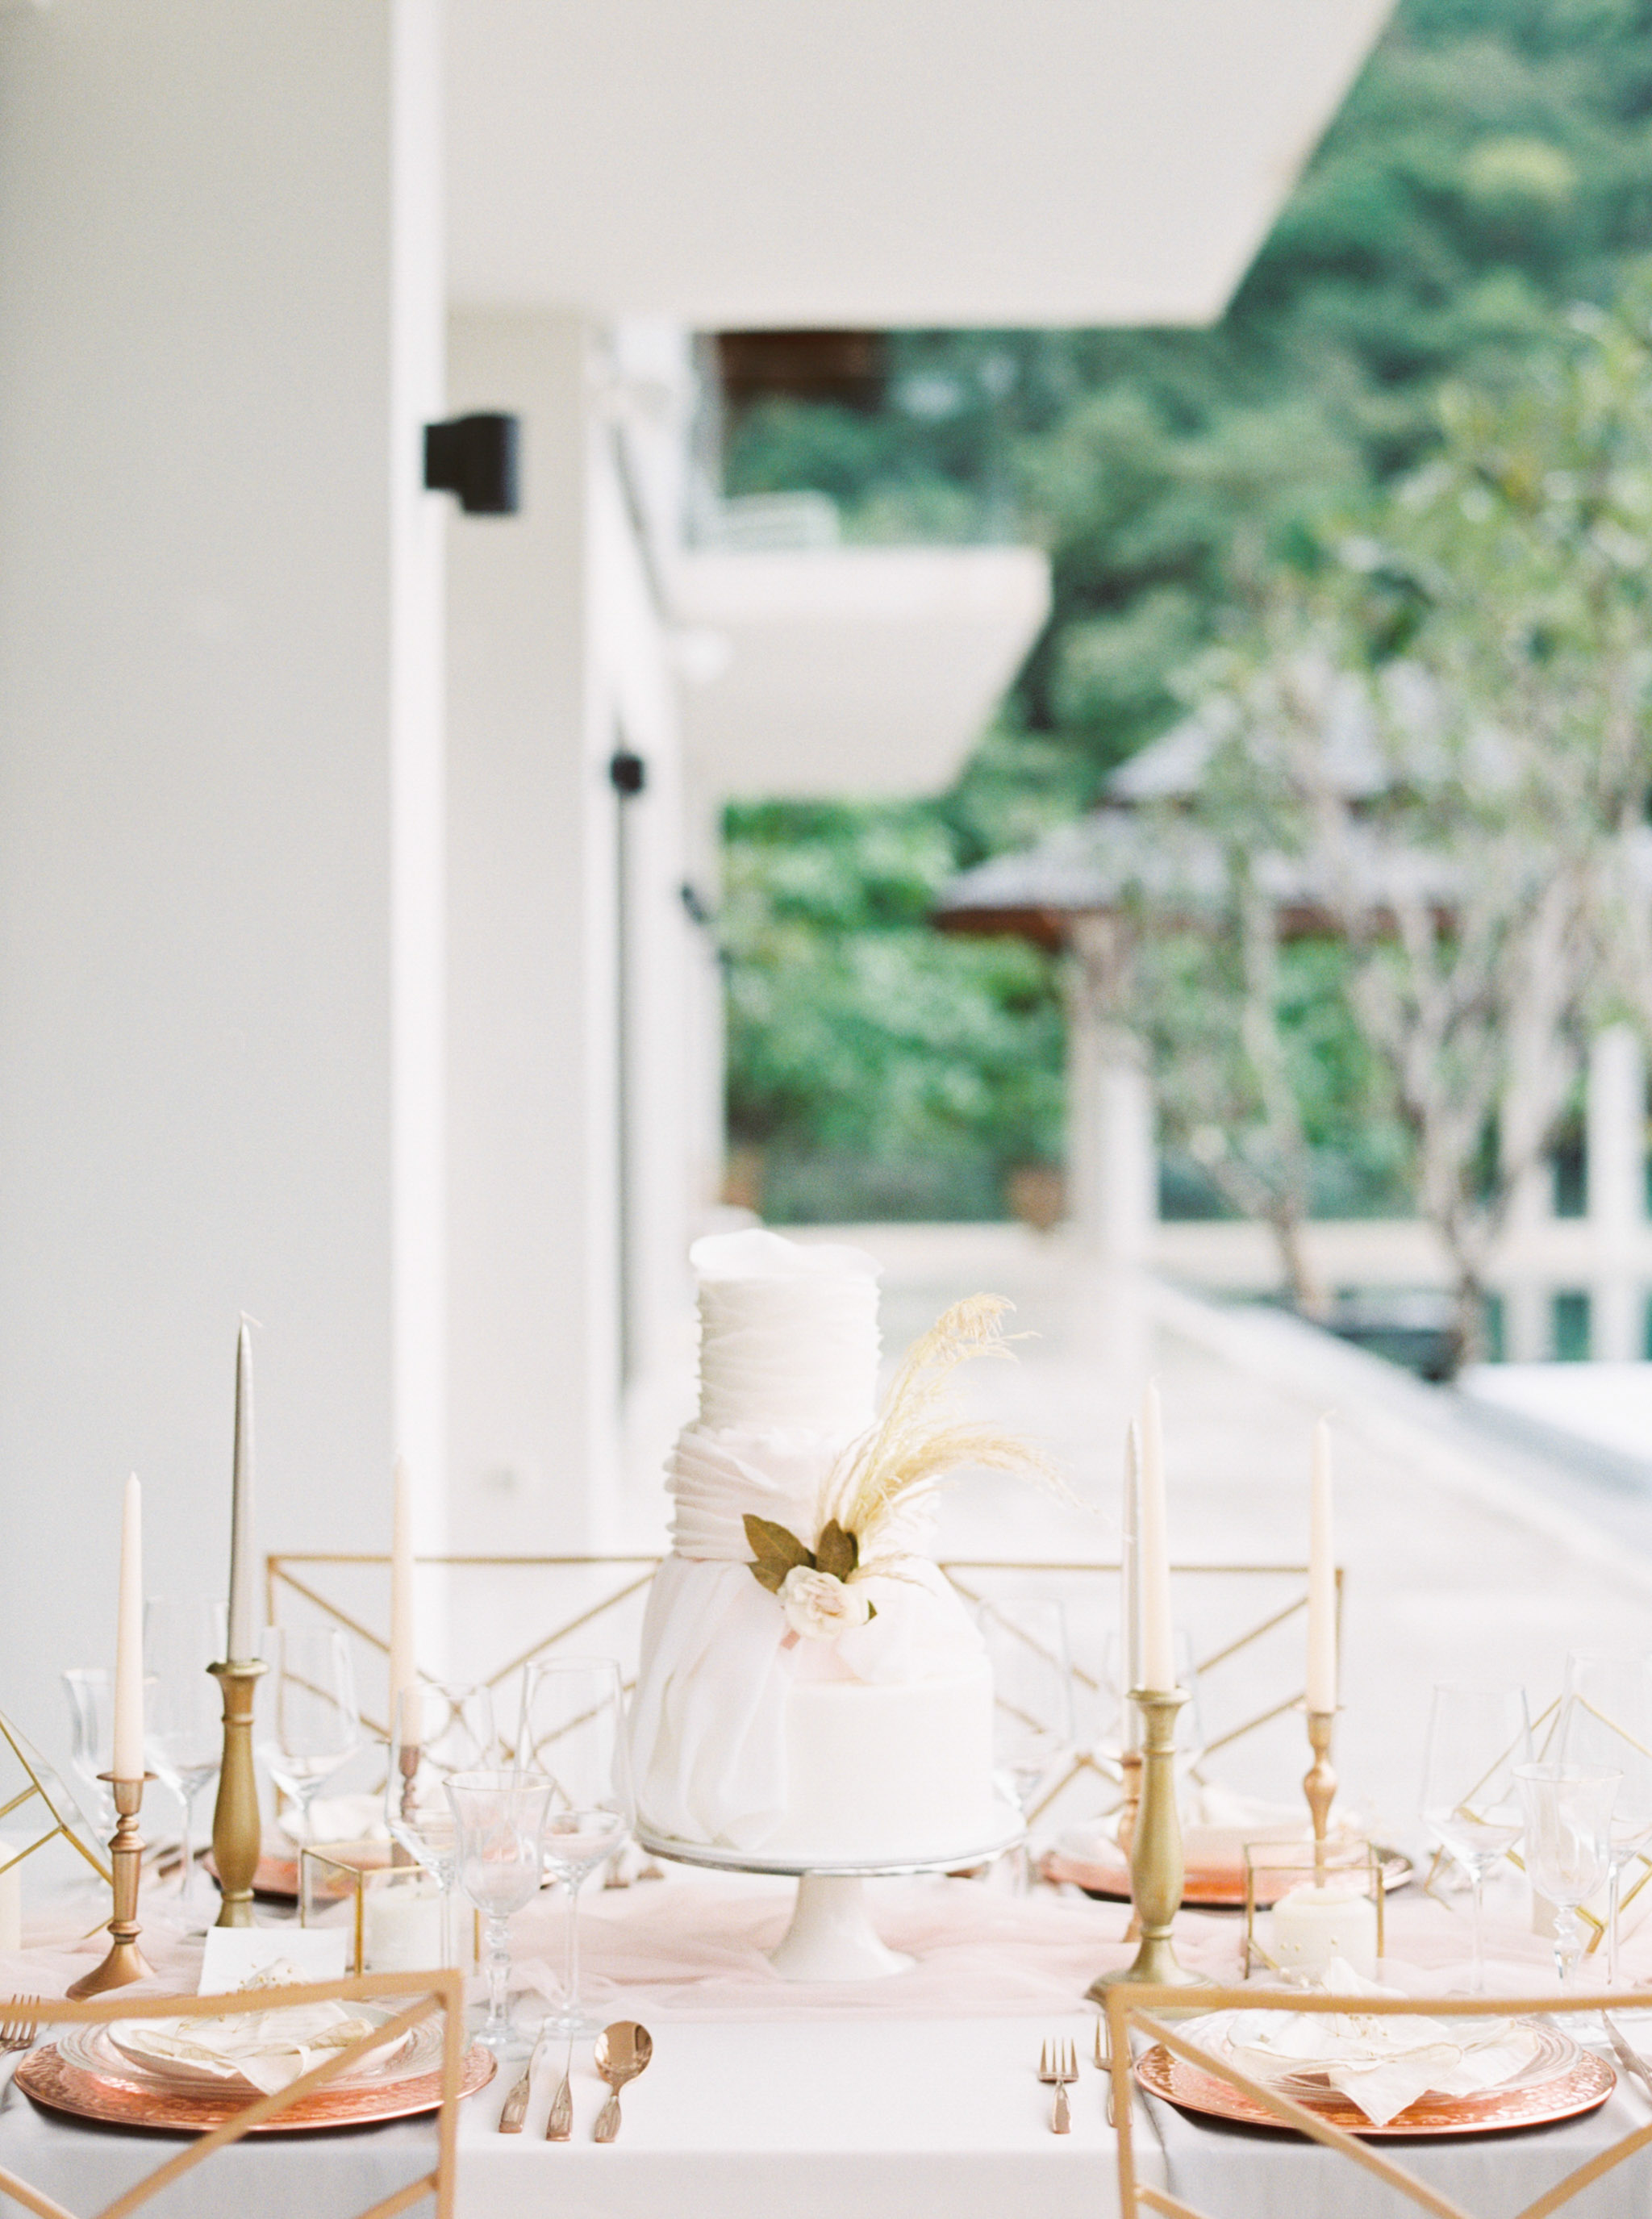 Destination Wedding at The Aquila Luxury Villas in Phuket Thailand Fine Art Film Wedding Photographer Sheri McMahon-00062-62.jpg